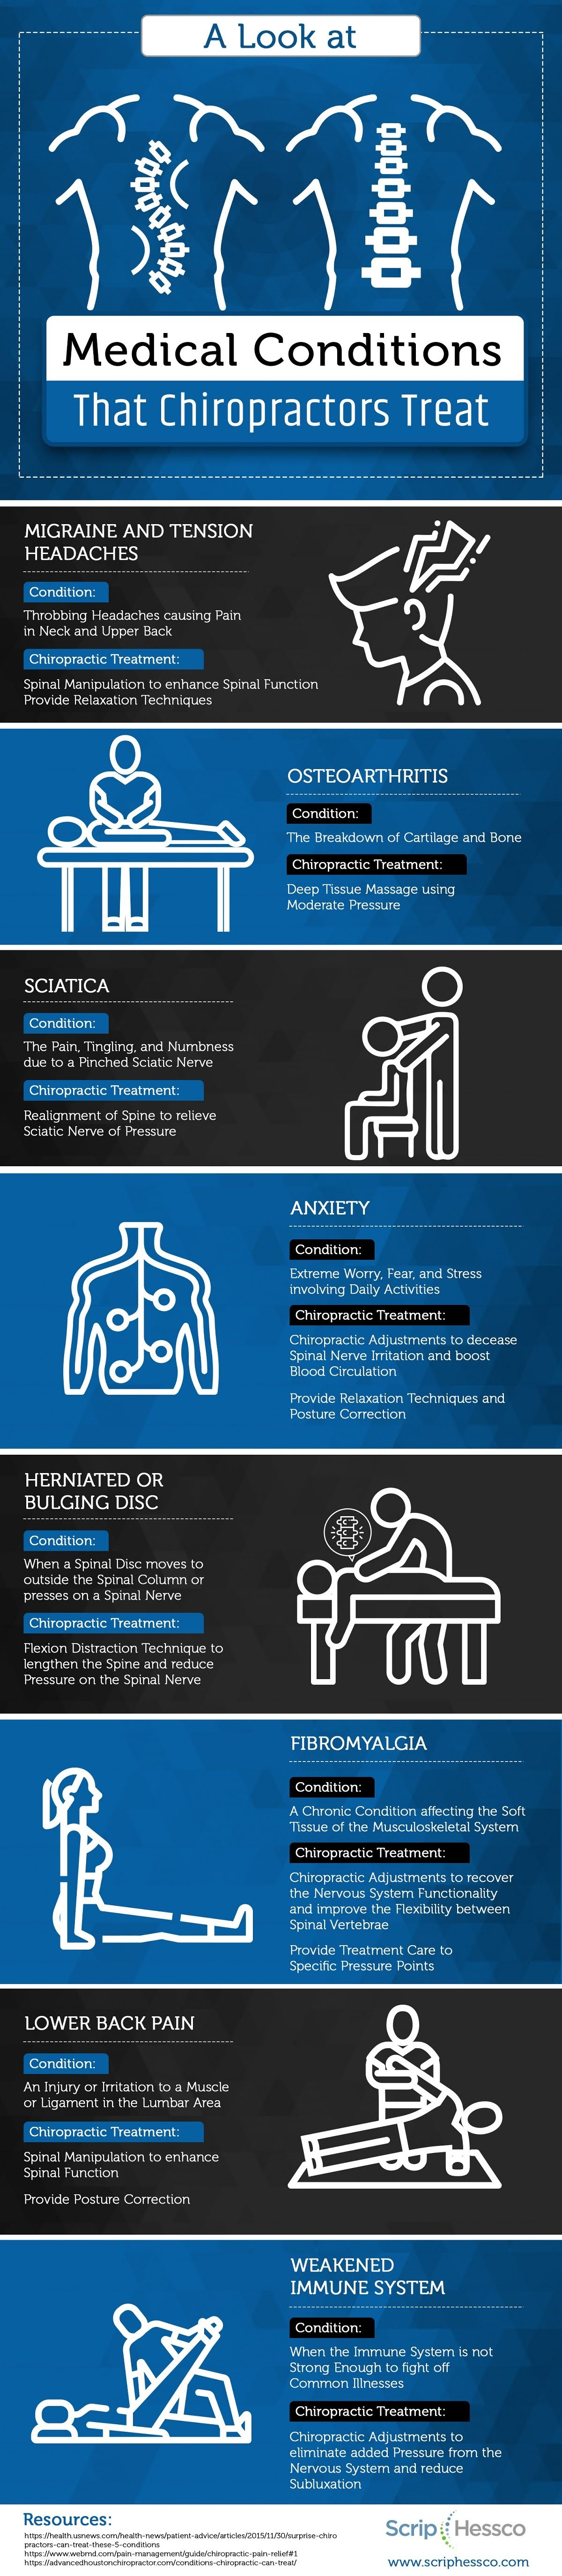 a-look-at-medical-conditions-that-chiropractors-treat-infographic